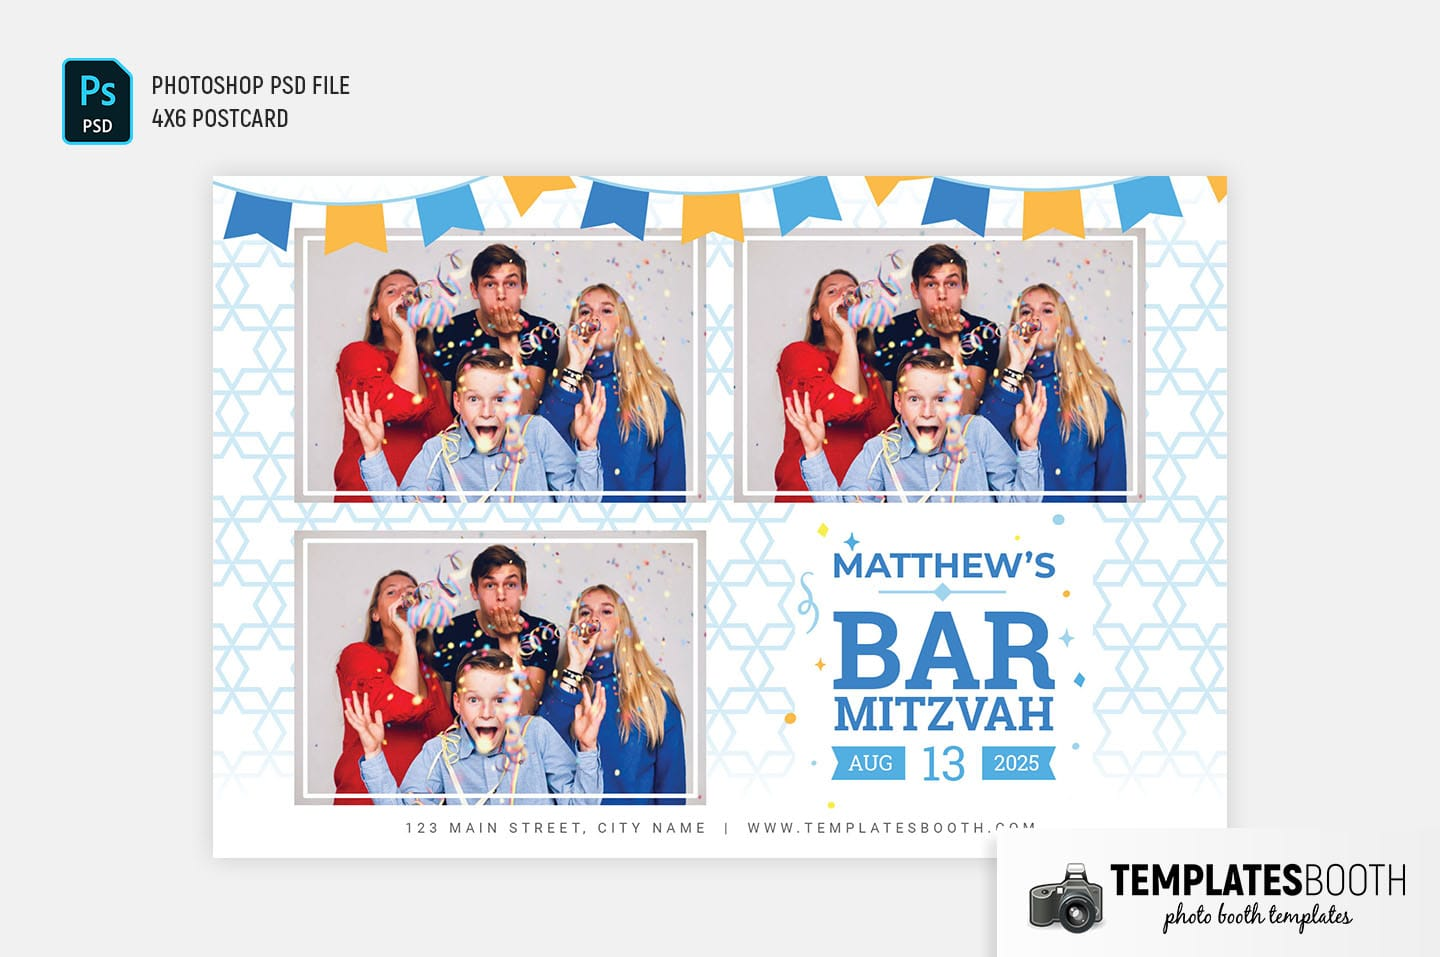 Bar Mitzvah Photo Booth Template (4x6 postcard landscape)